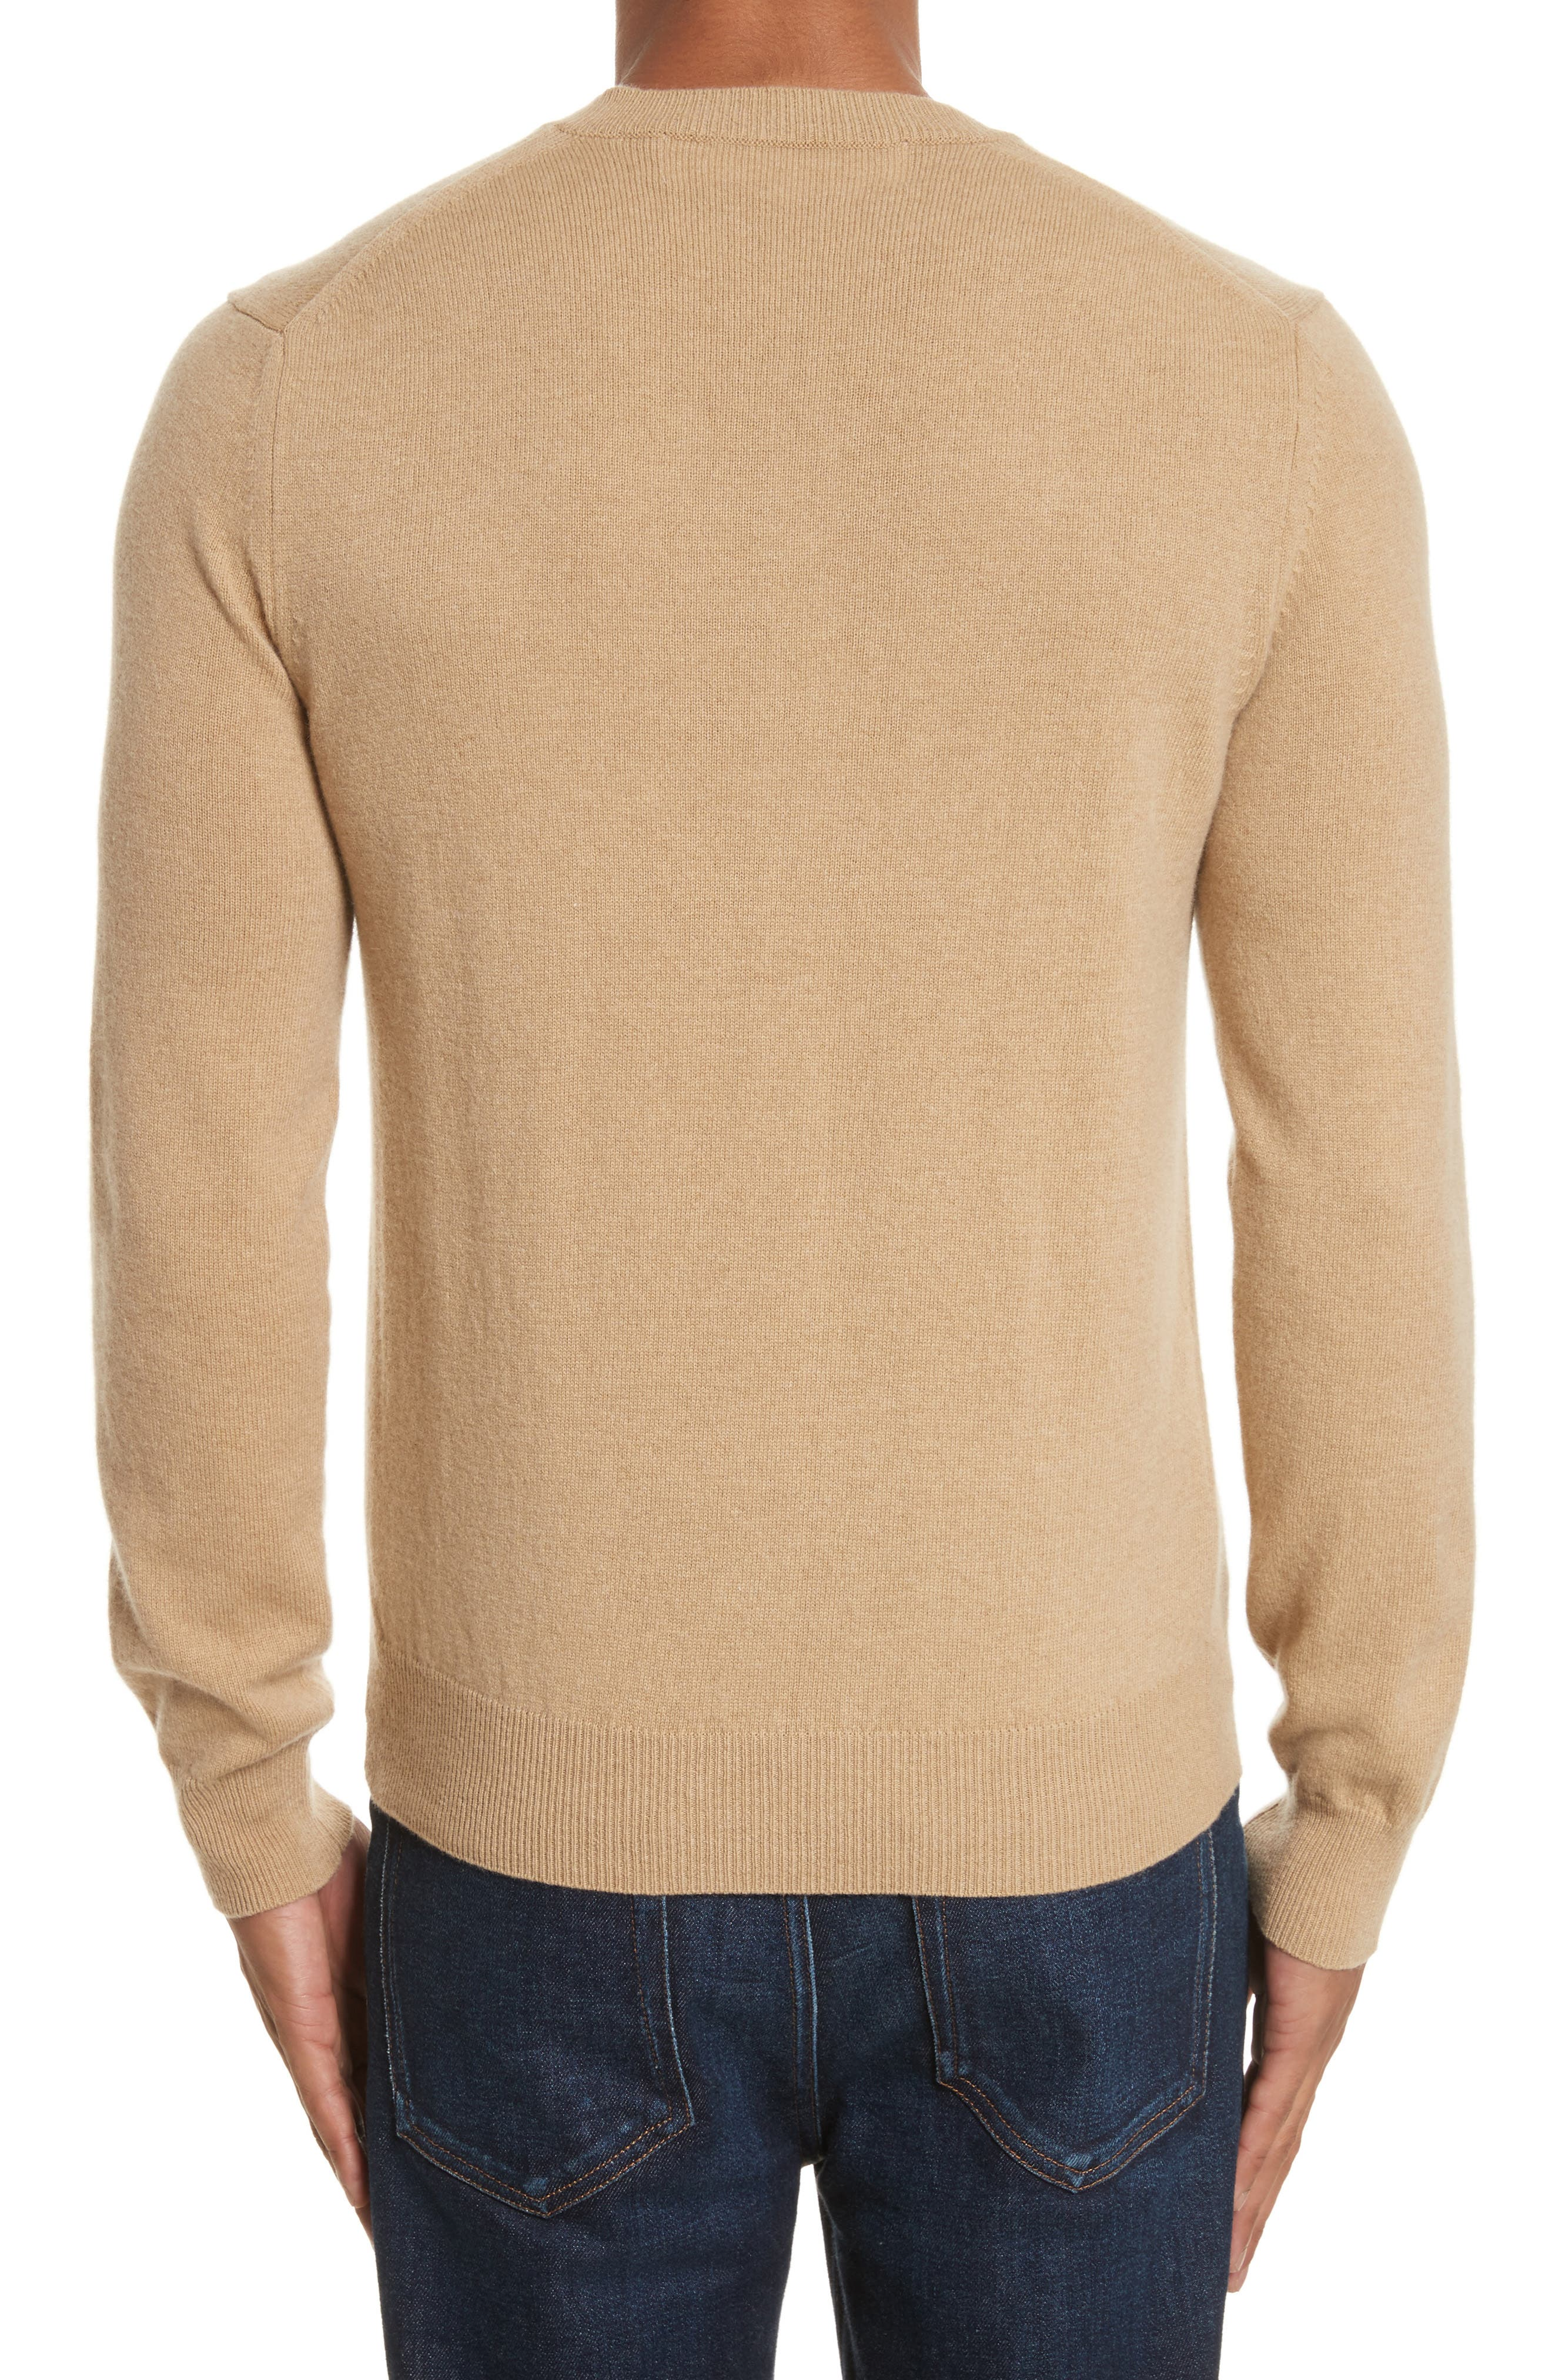 Comme des Garçons PLAY White Heart Wool V-Neck Sweater,                             Alternate thumbnail 2, color,                             Camel